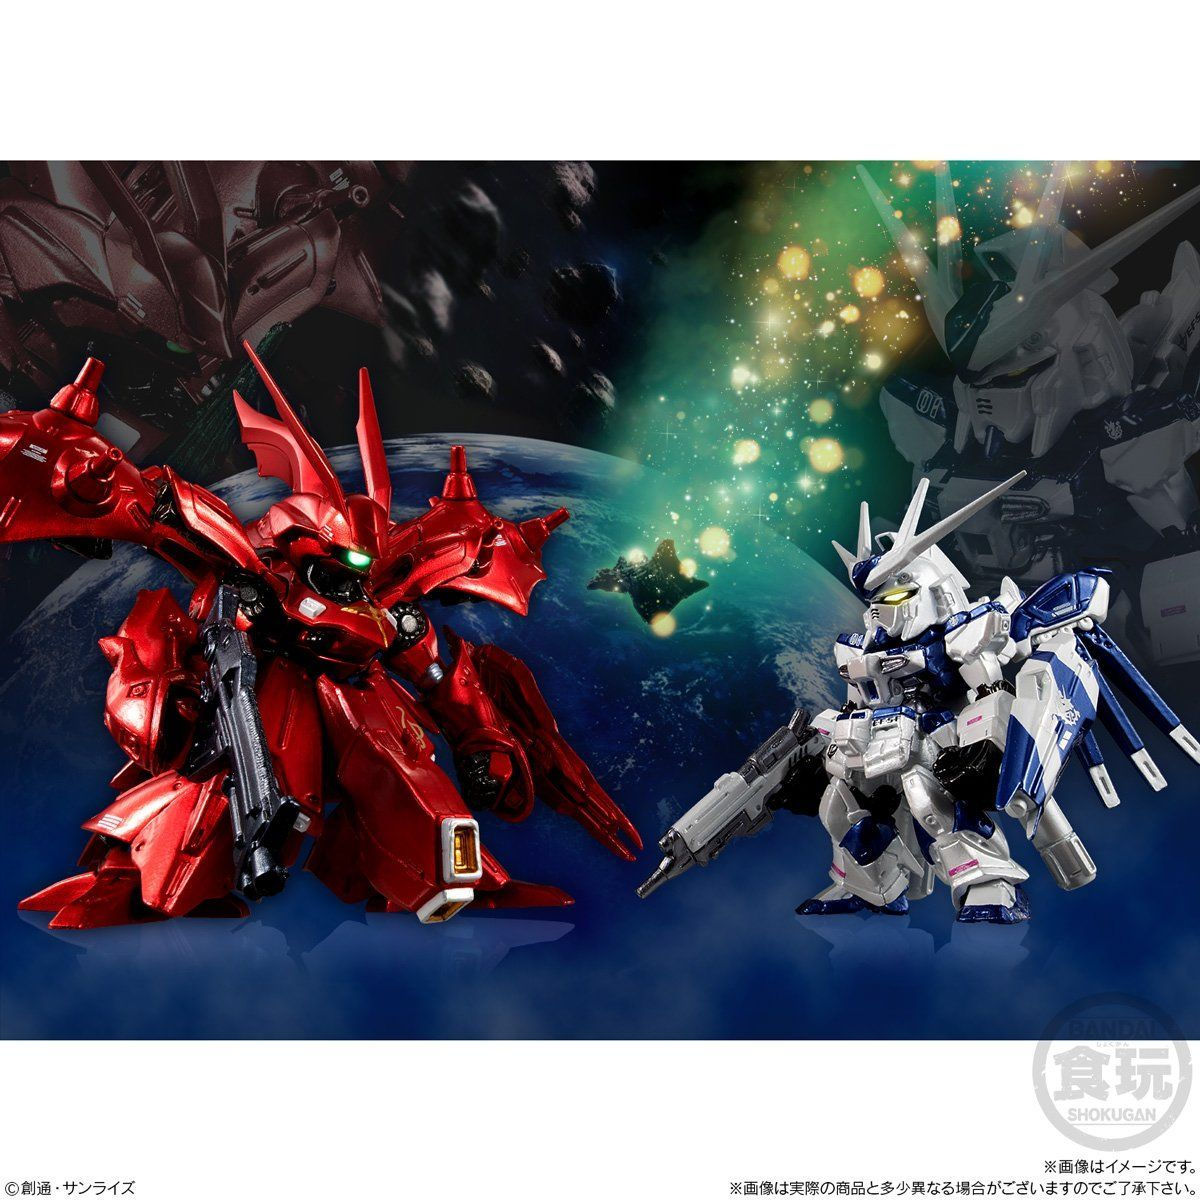 P-Bandai FW GUNDAM CONVERGE: CORE Hi-ν Gundam & Nightingale  (Metallic Color ver.)